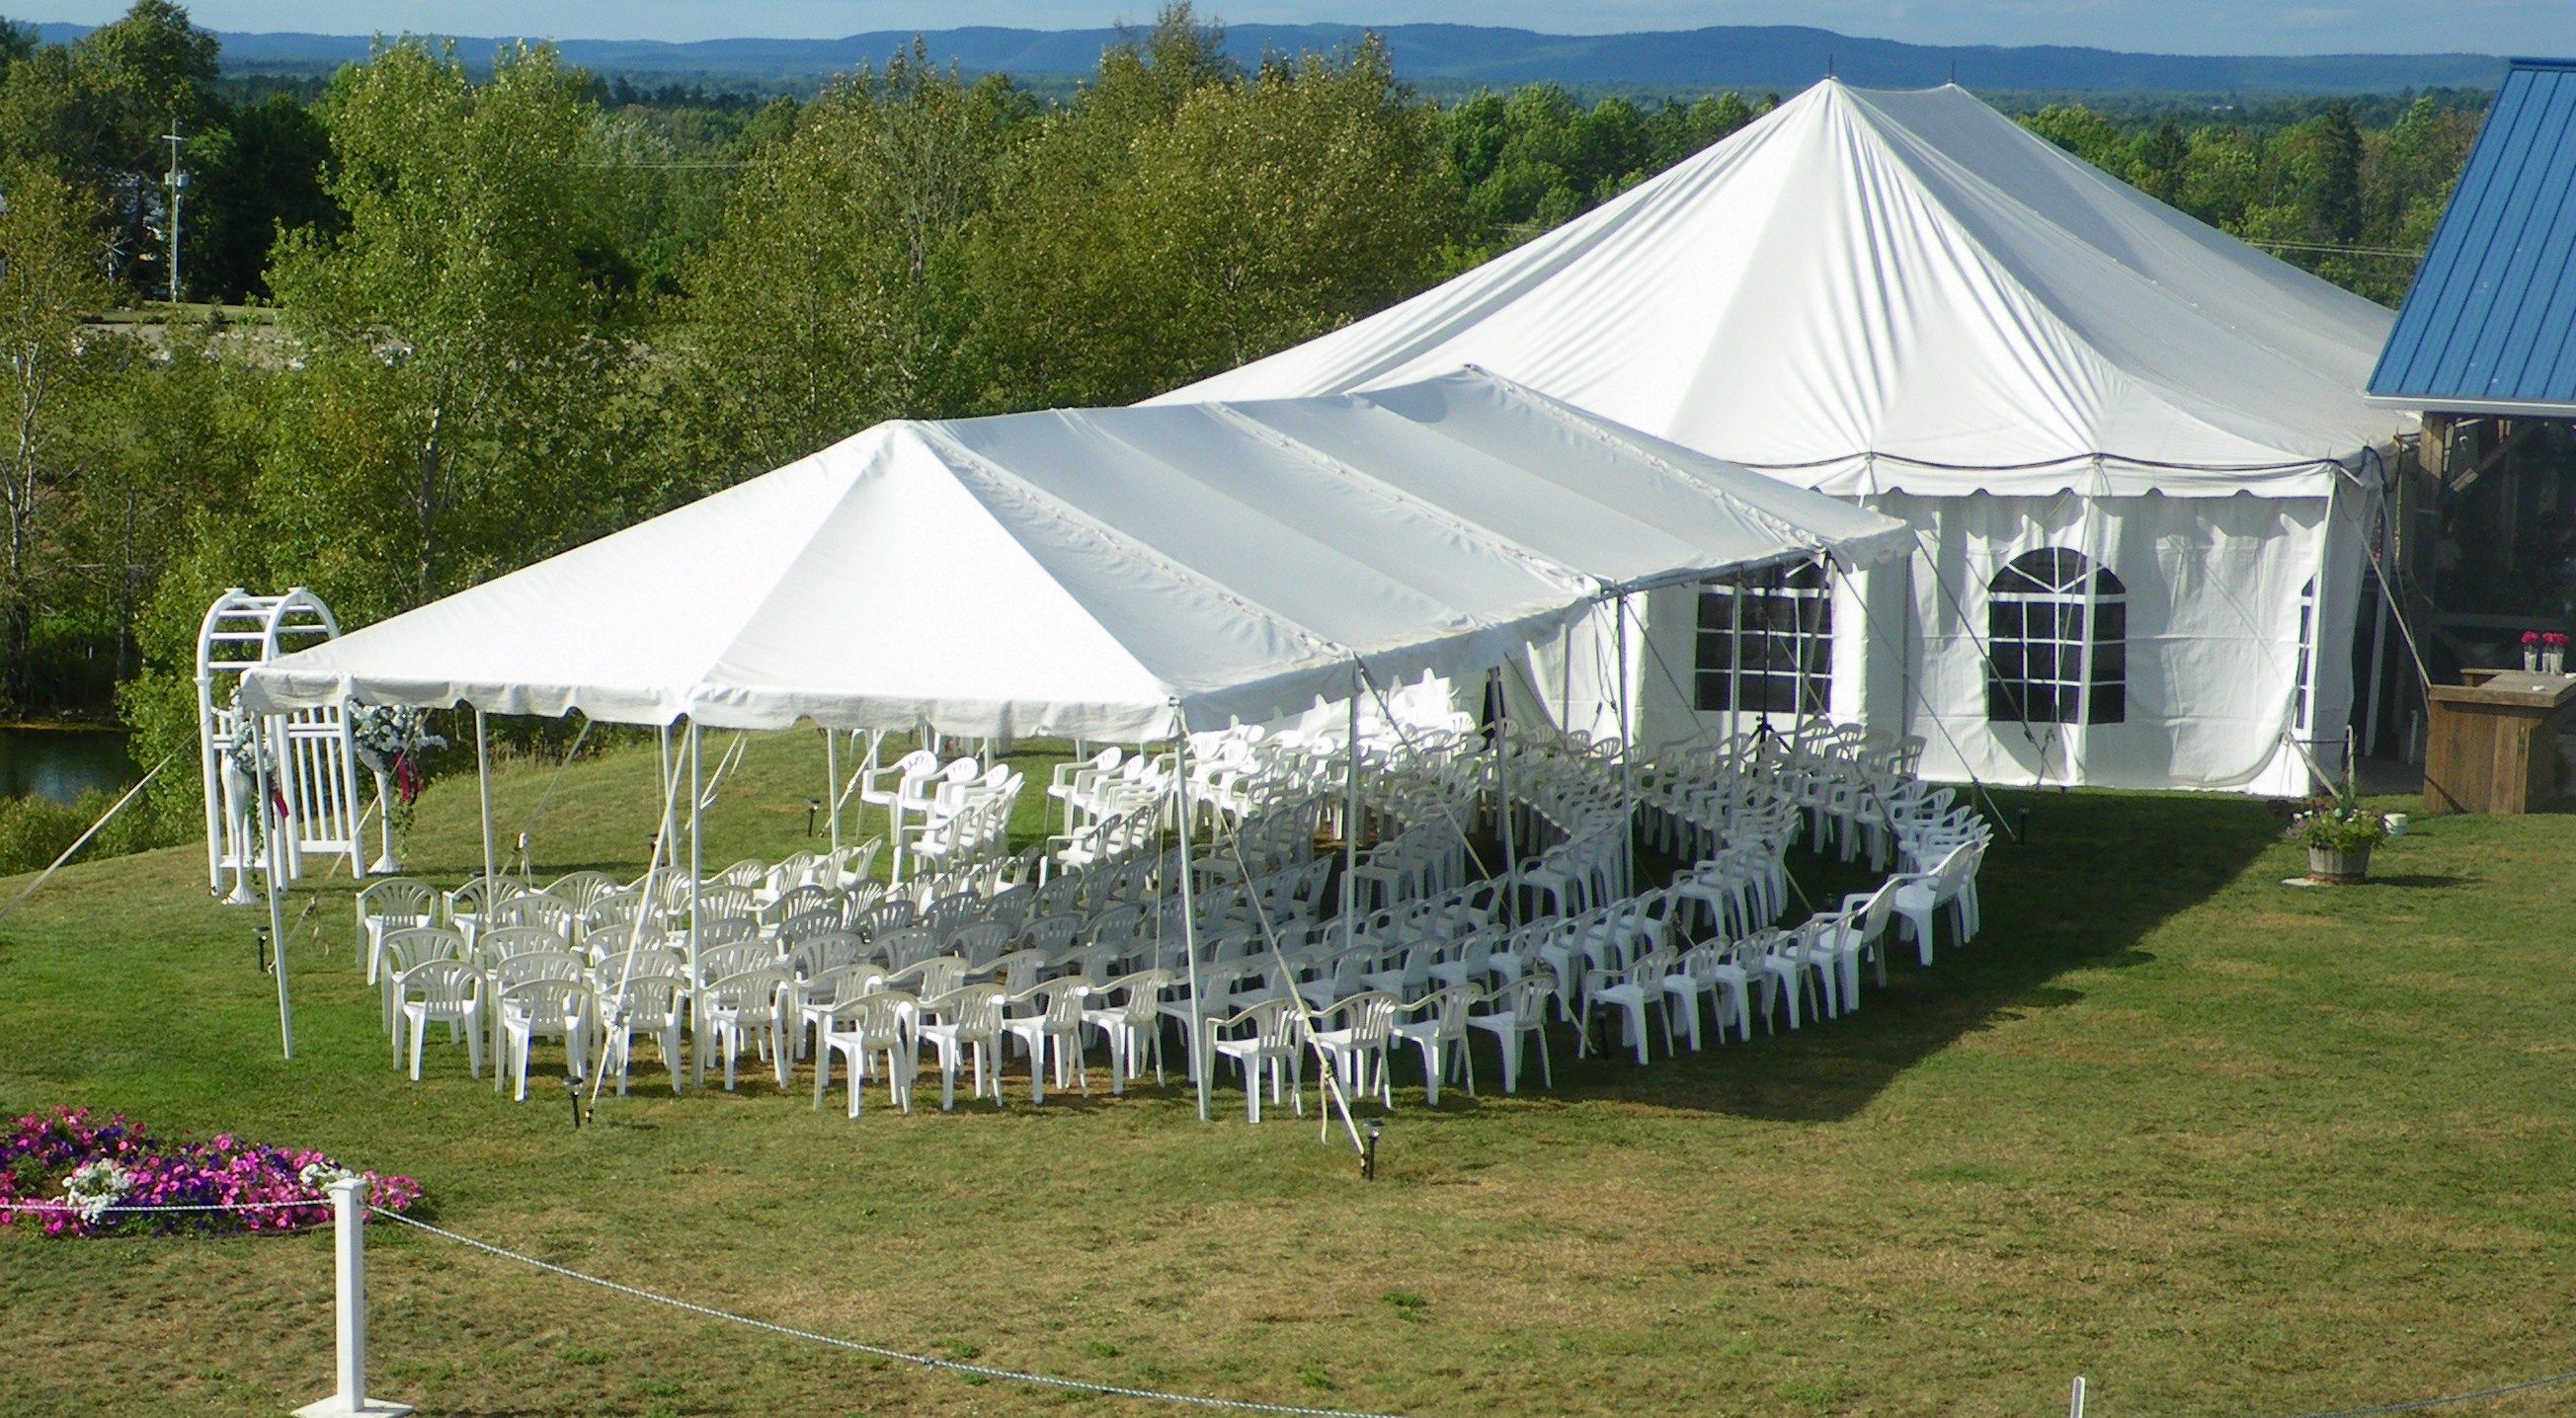 Huglis Has Beautiful White Garden Tents With Clear Windows For On Site Weddings At Blueberry Ranch In Pembroke